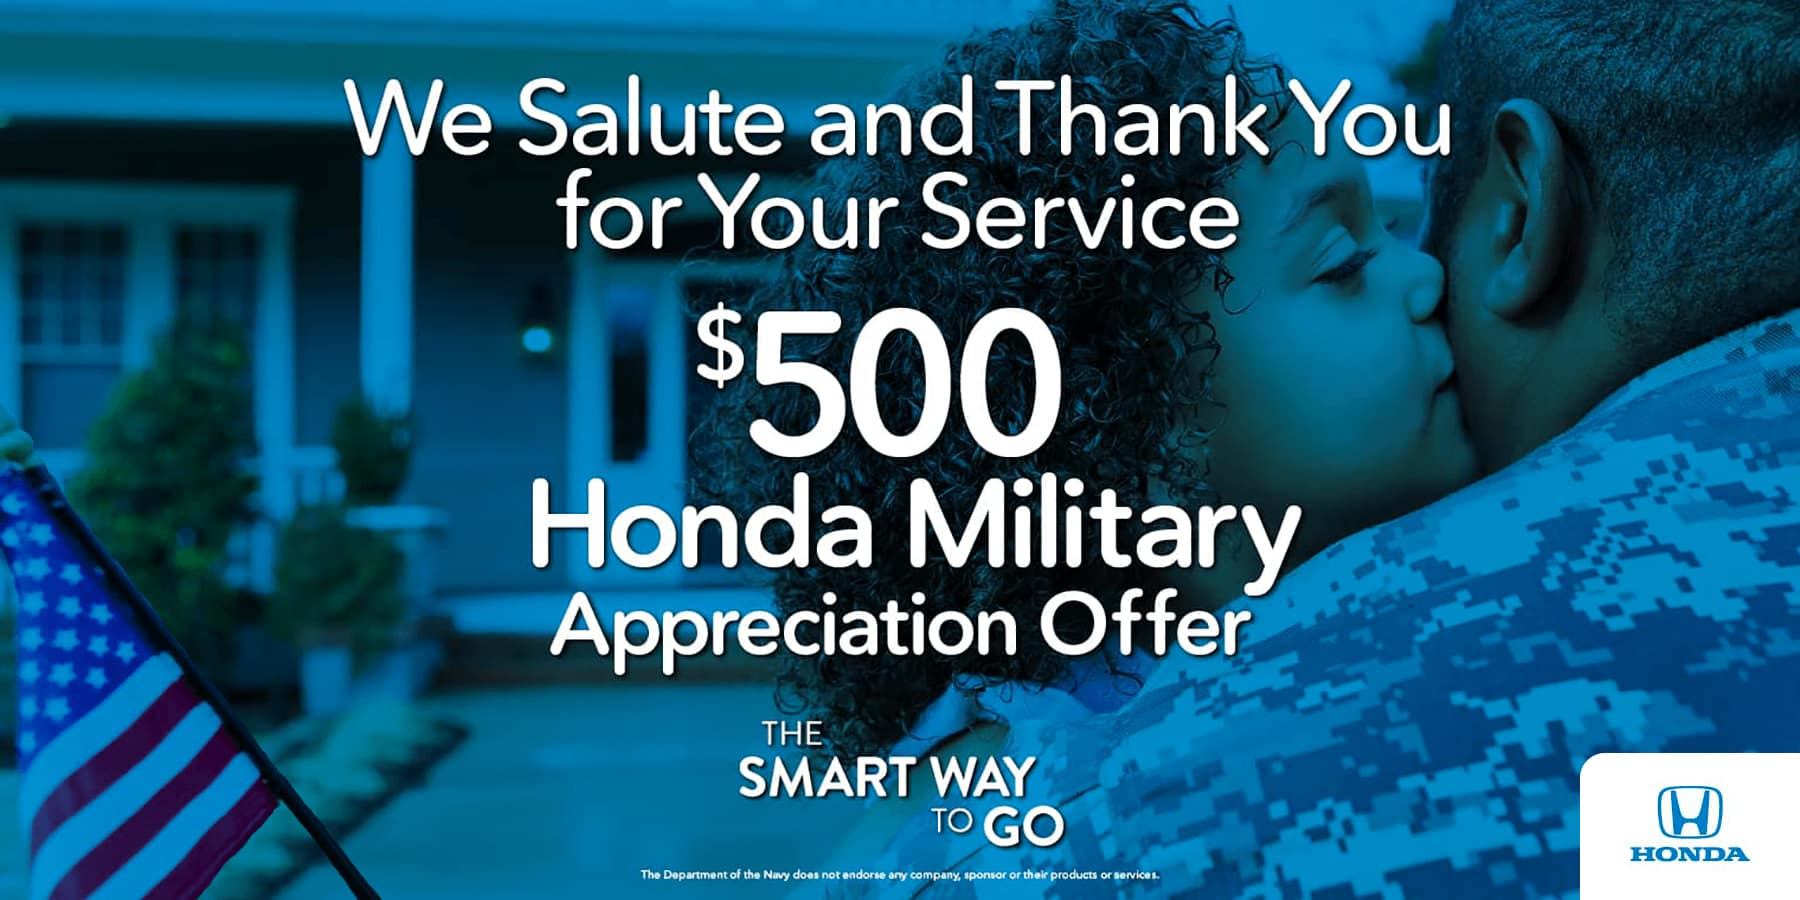 Honda Military Appreciation Offer HP Slide